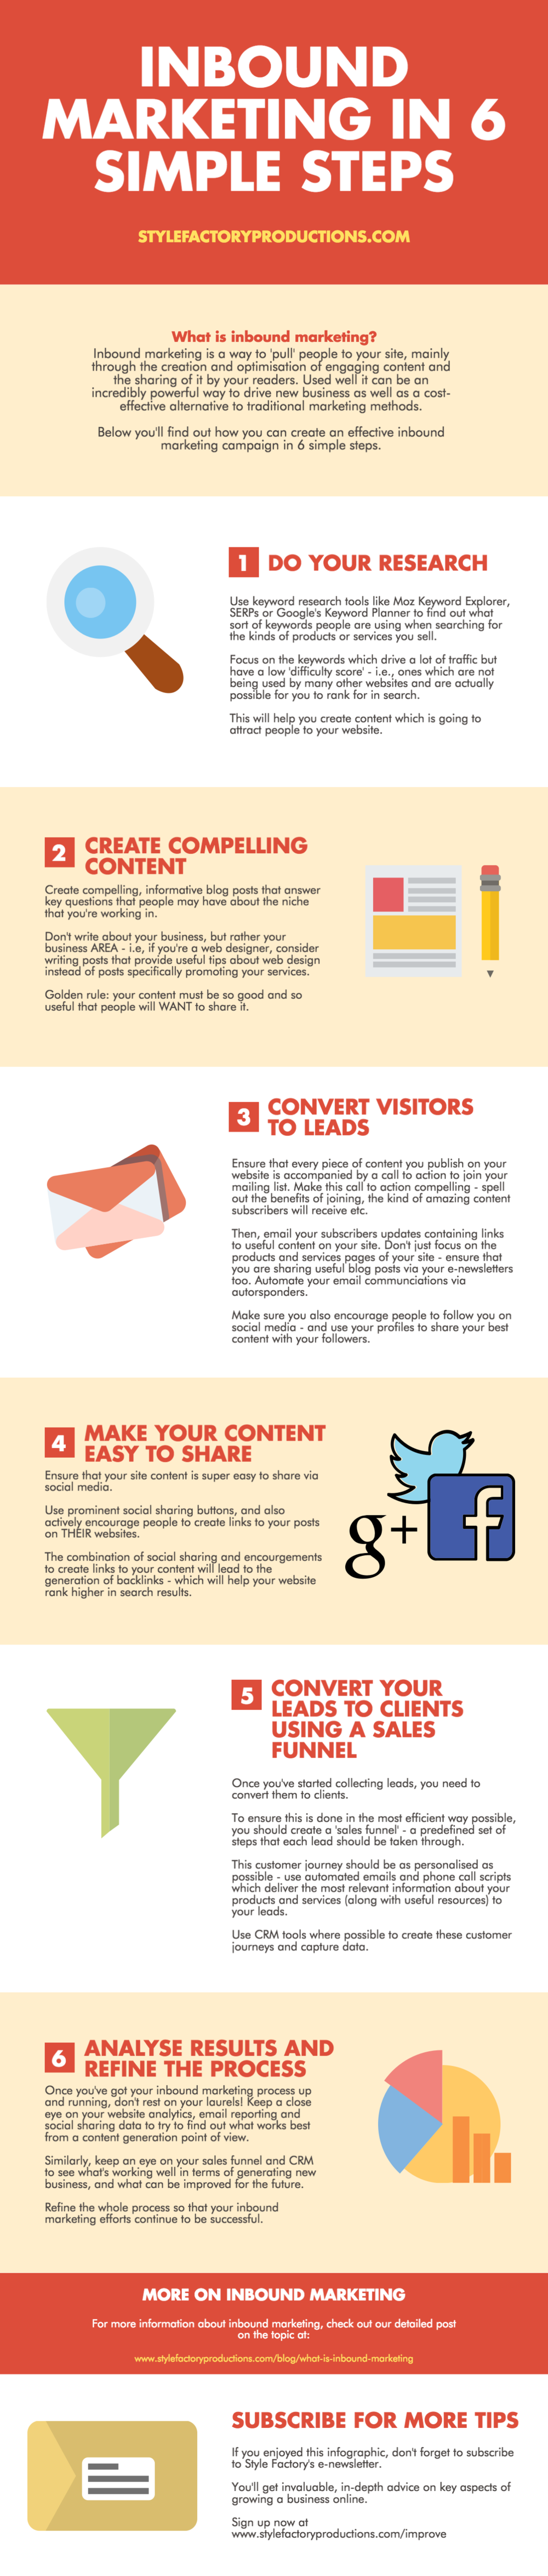 Inbound marketing infographic